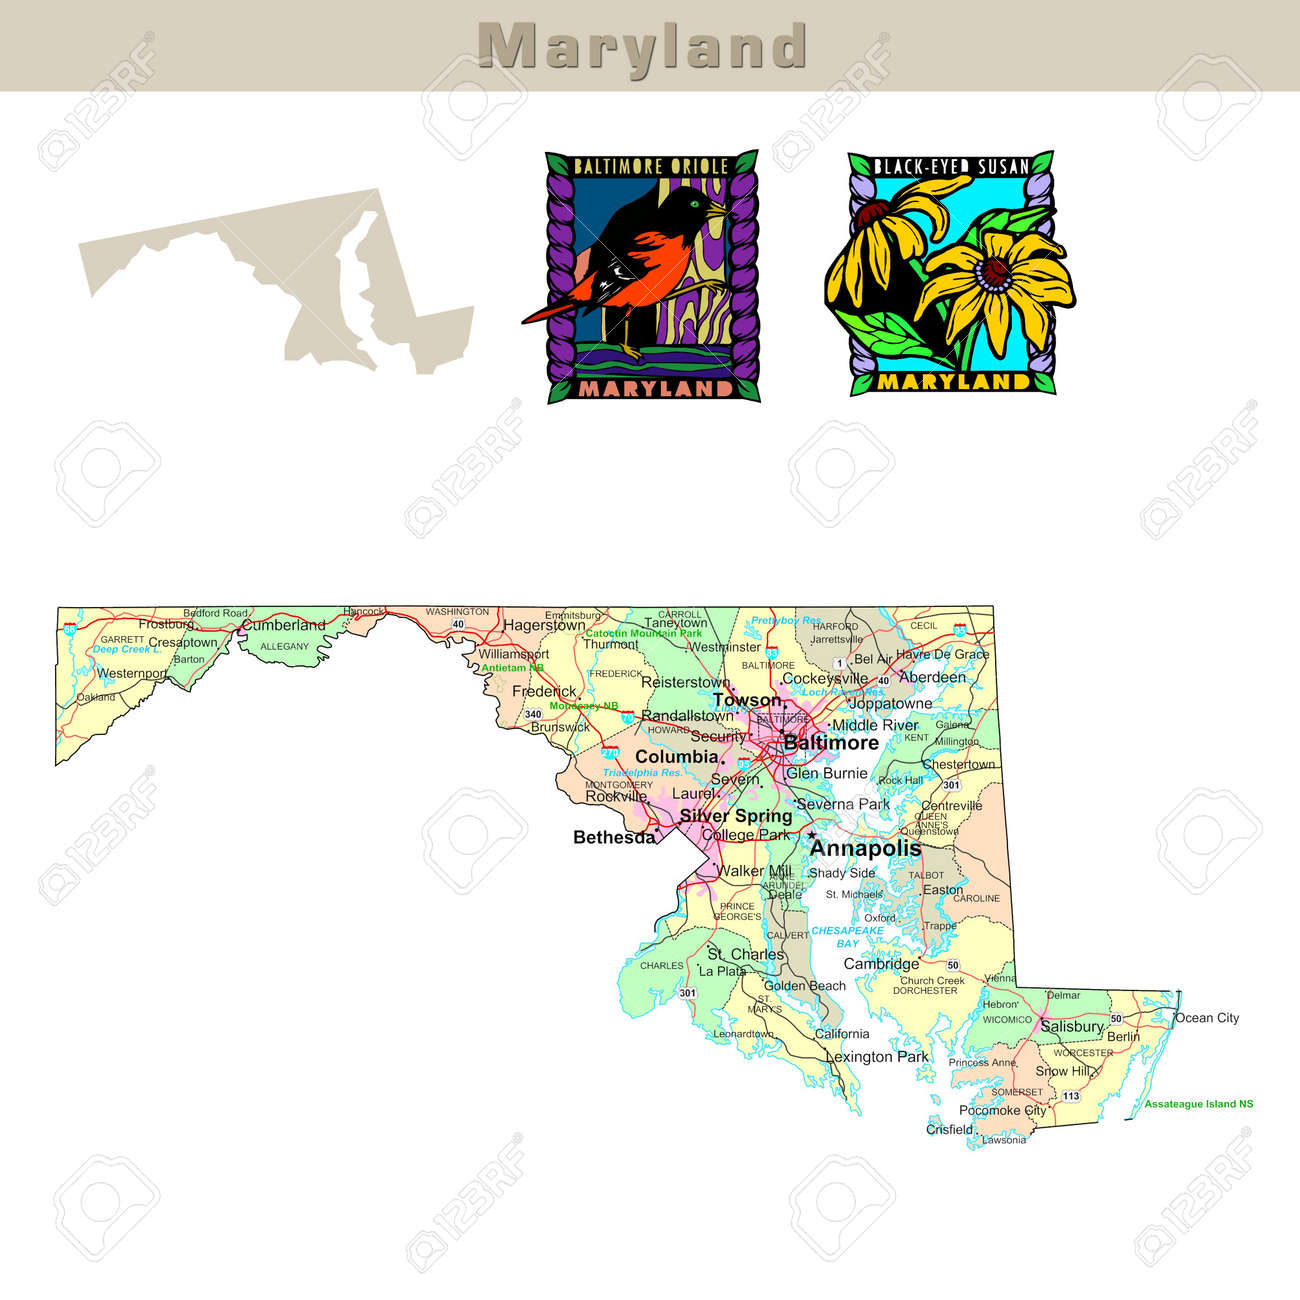 USA States Series Maryland Political Map With Counties Roads